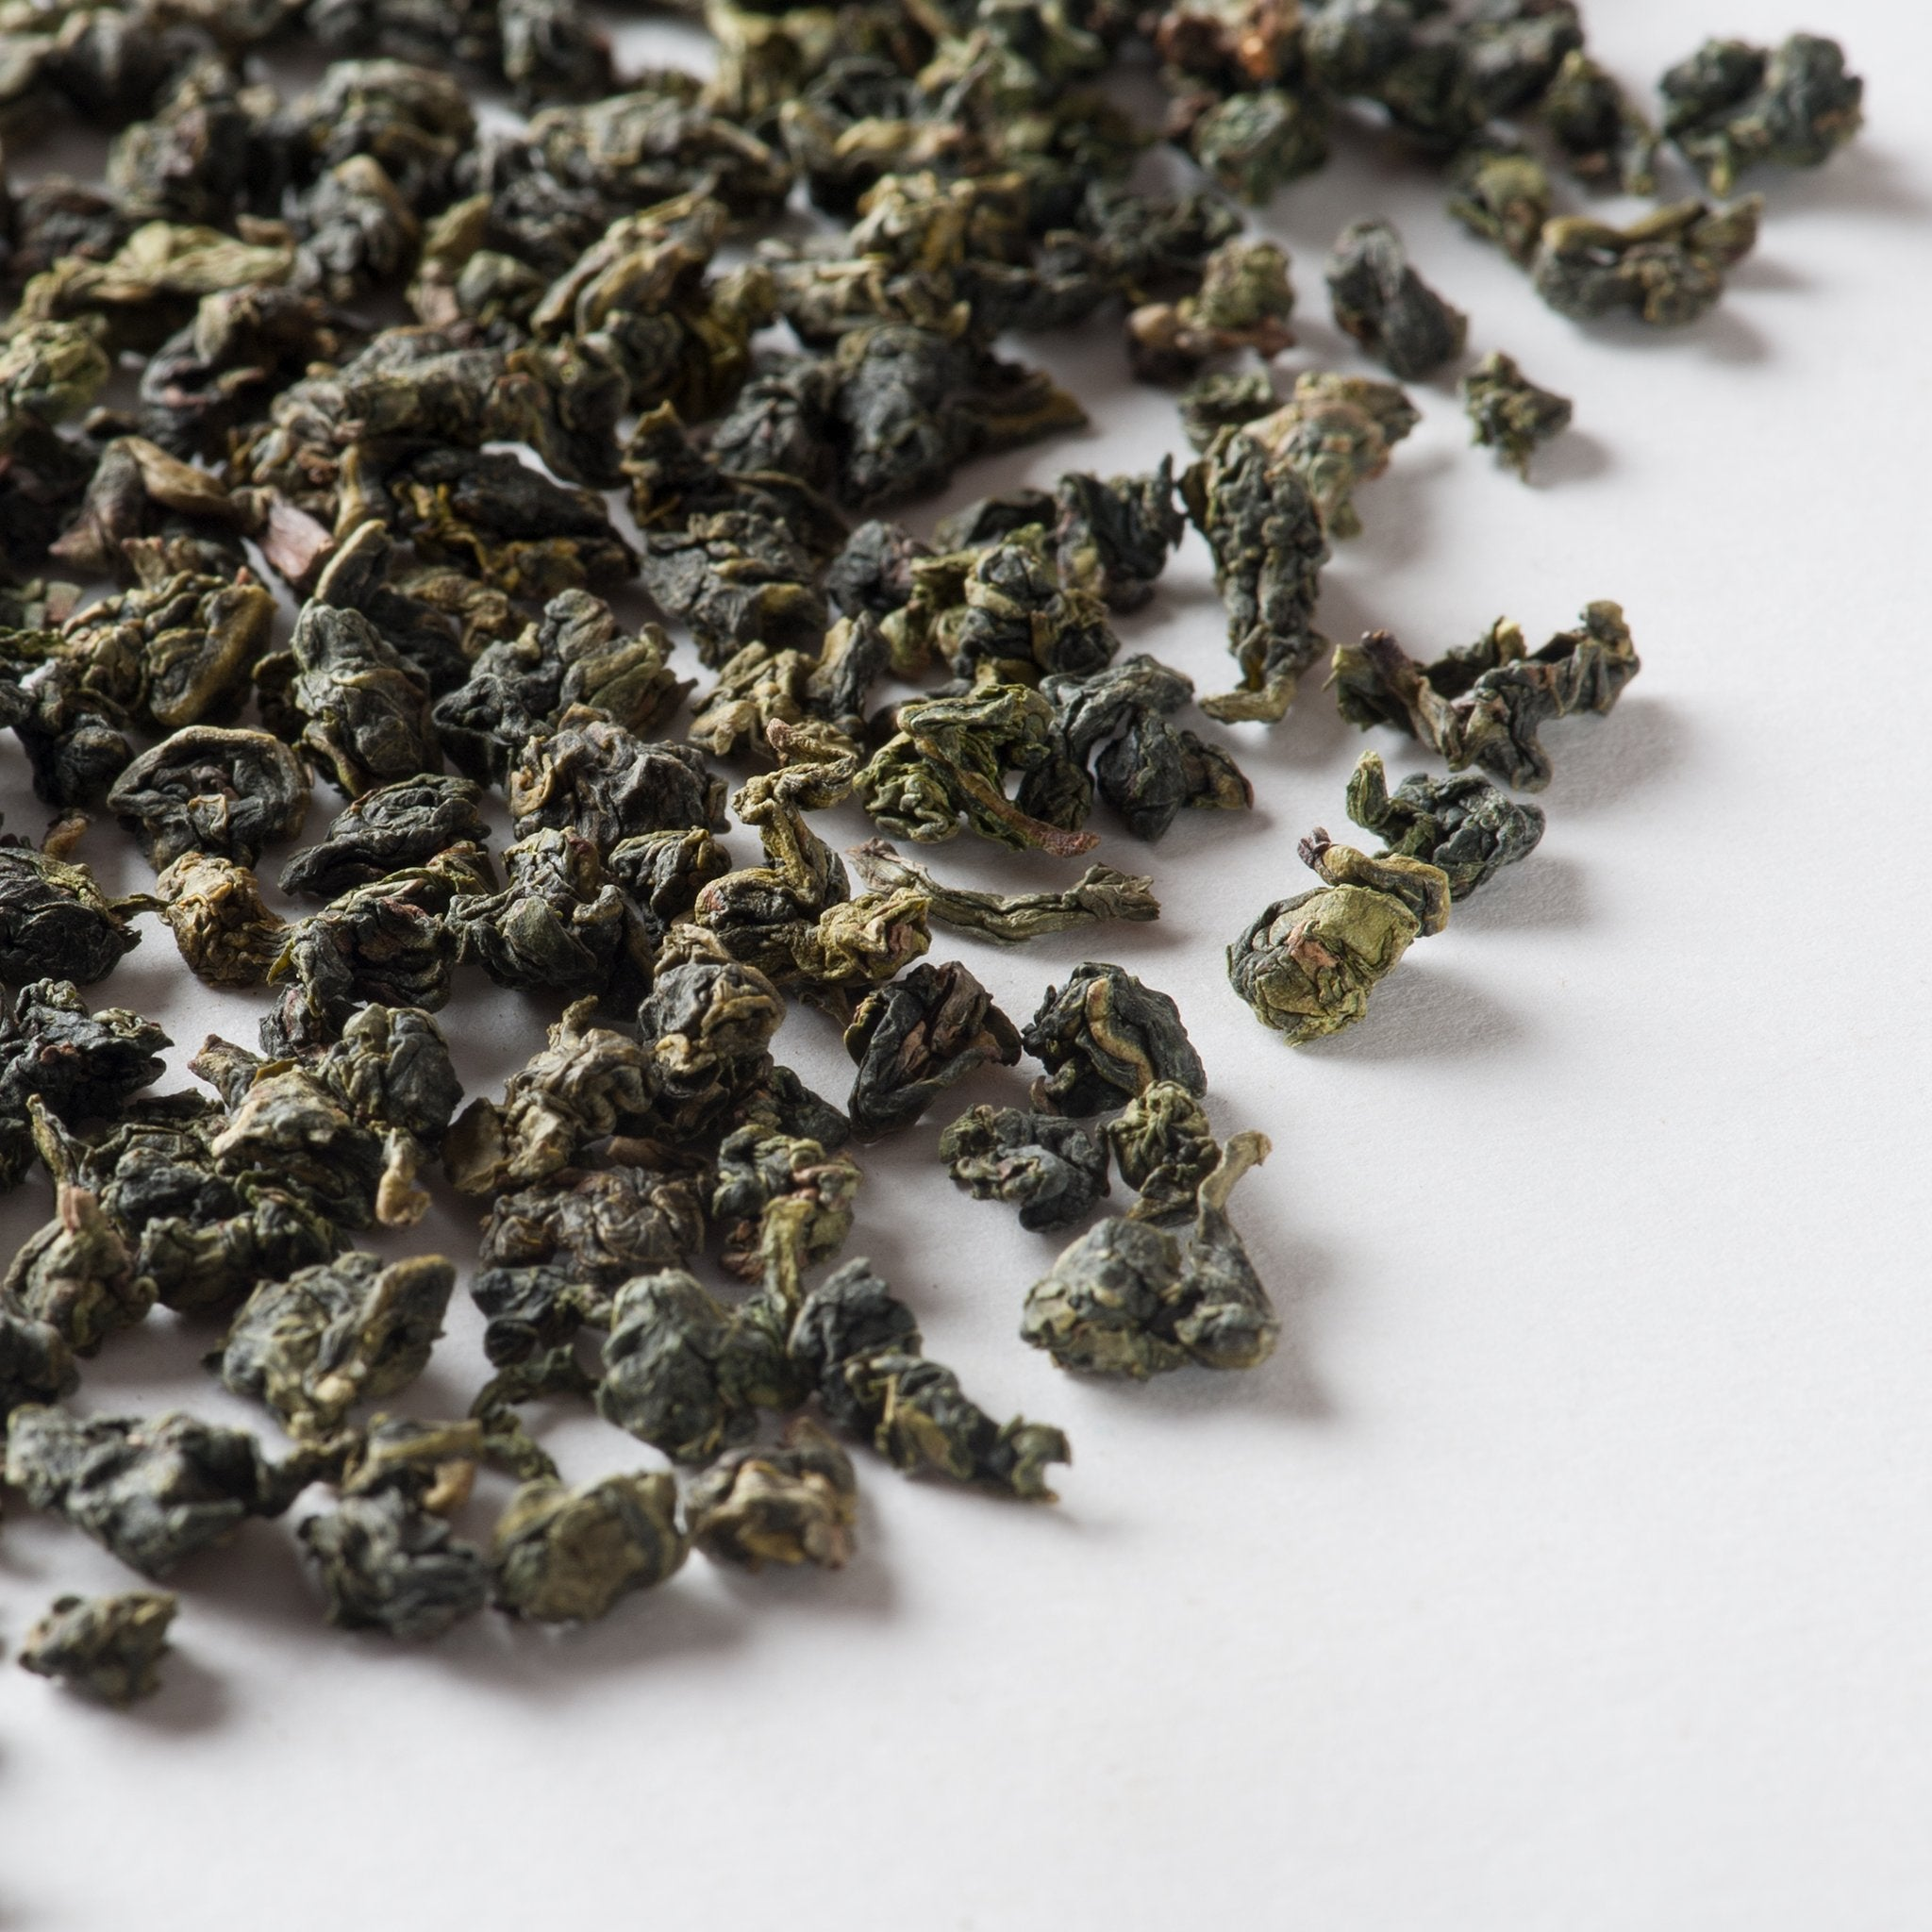 Loose Leaf - Oolong